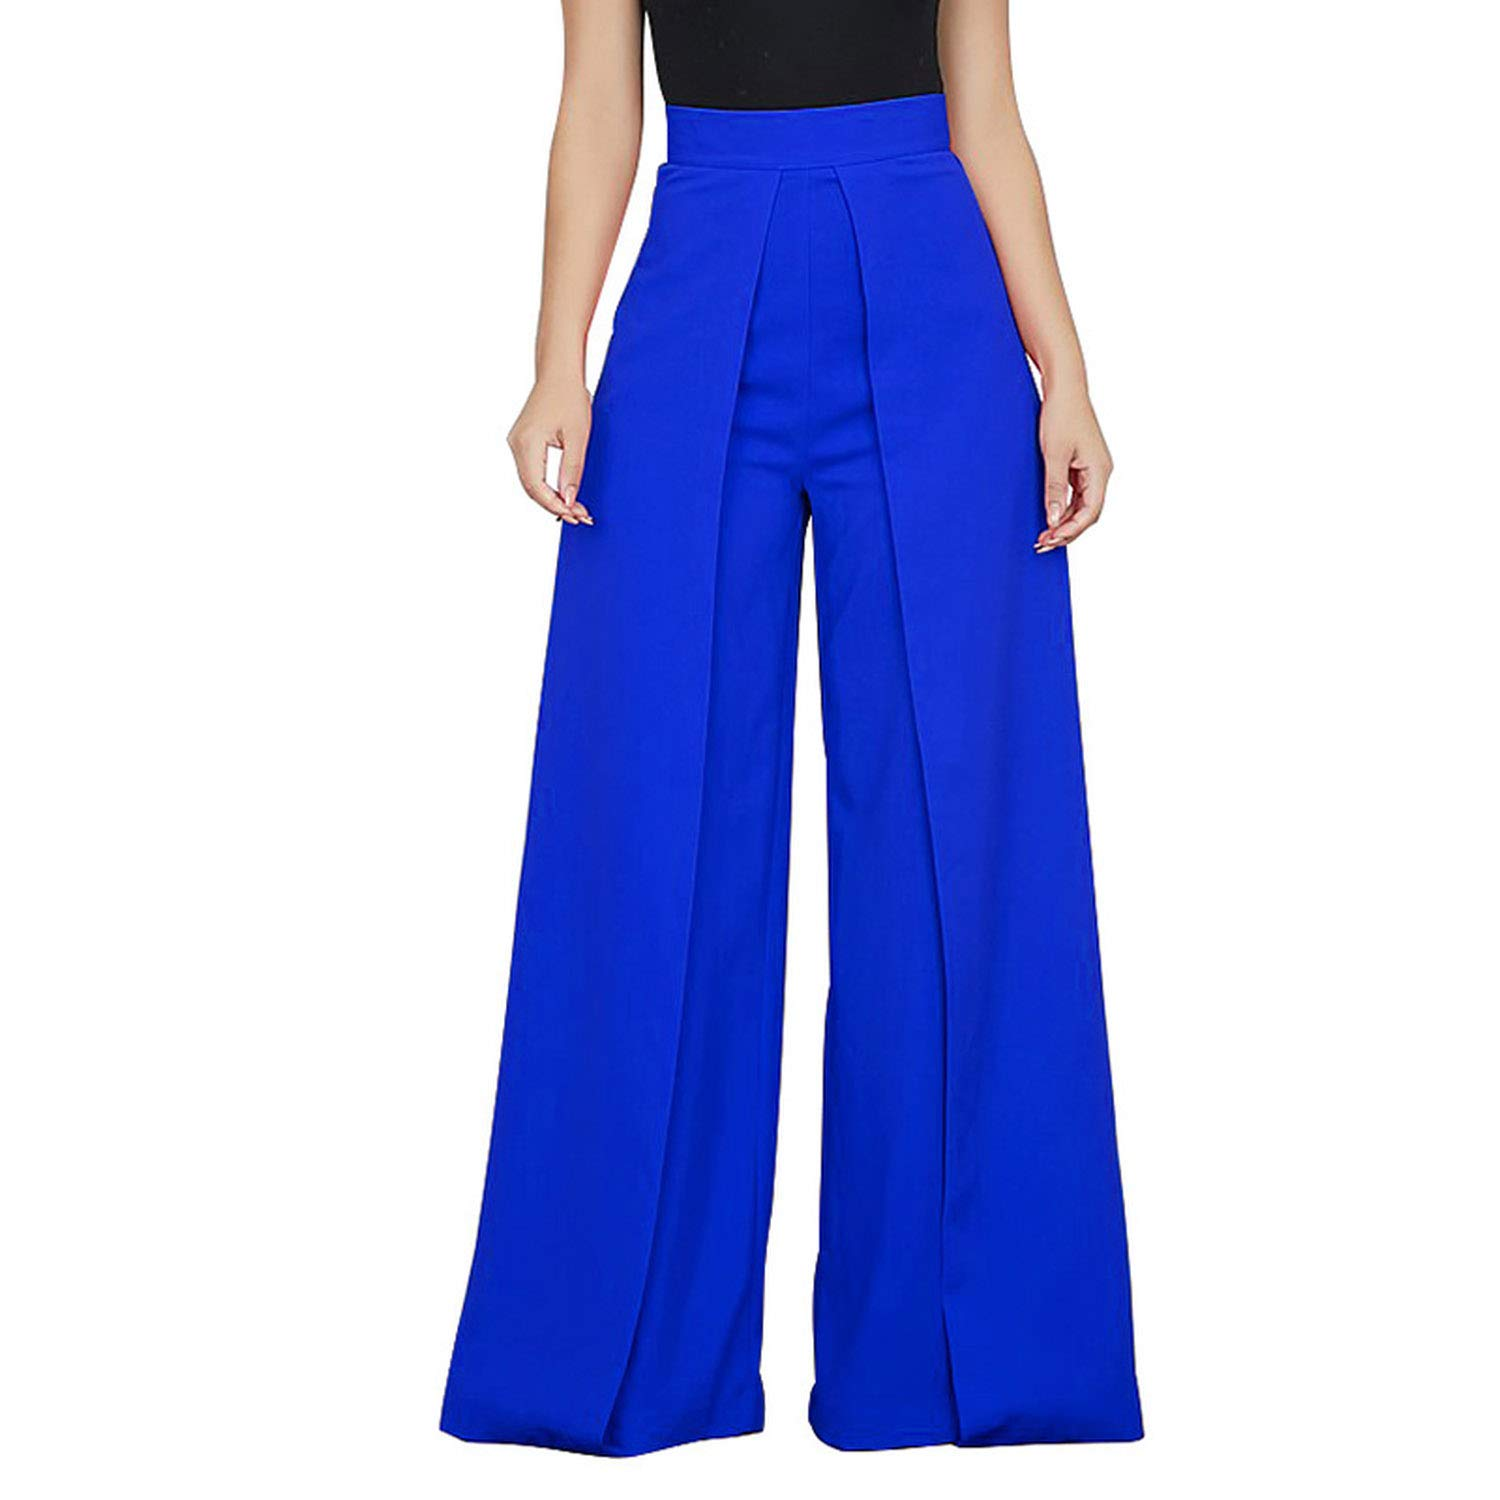 bluee Lishfun Casual High Waist Loose Wide Leg Pants Women Solid Patchwork Pants Trousers Female Elegant Back Zipper Palazzo Pants